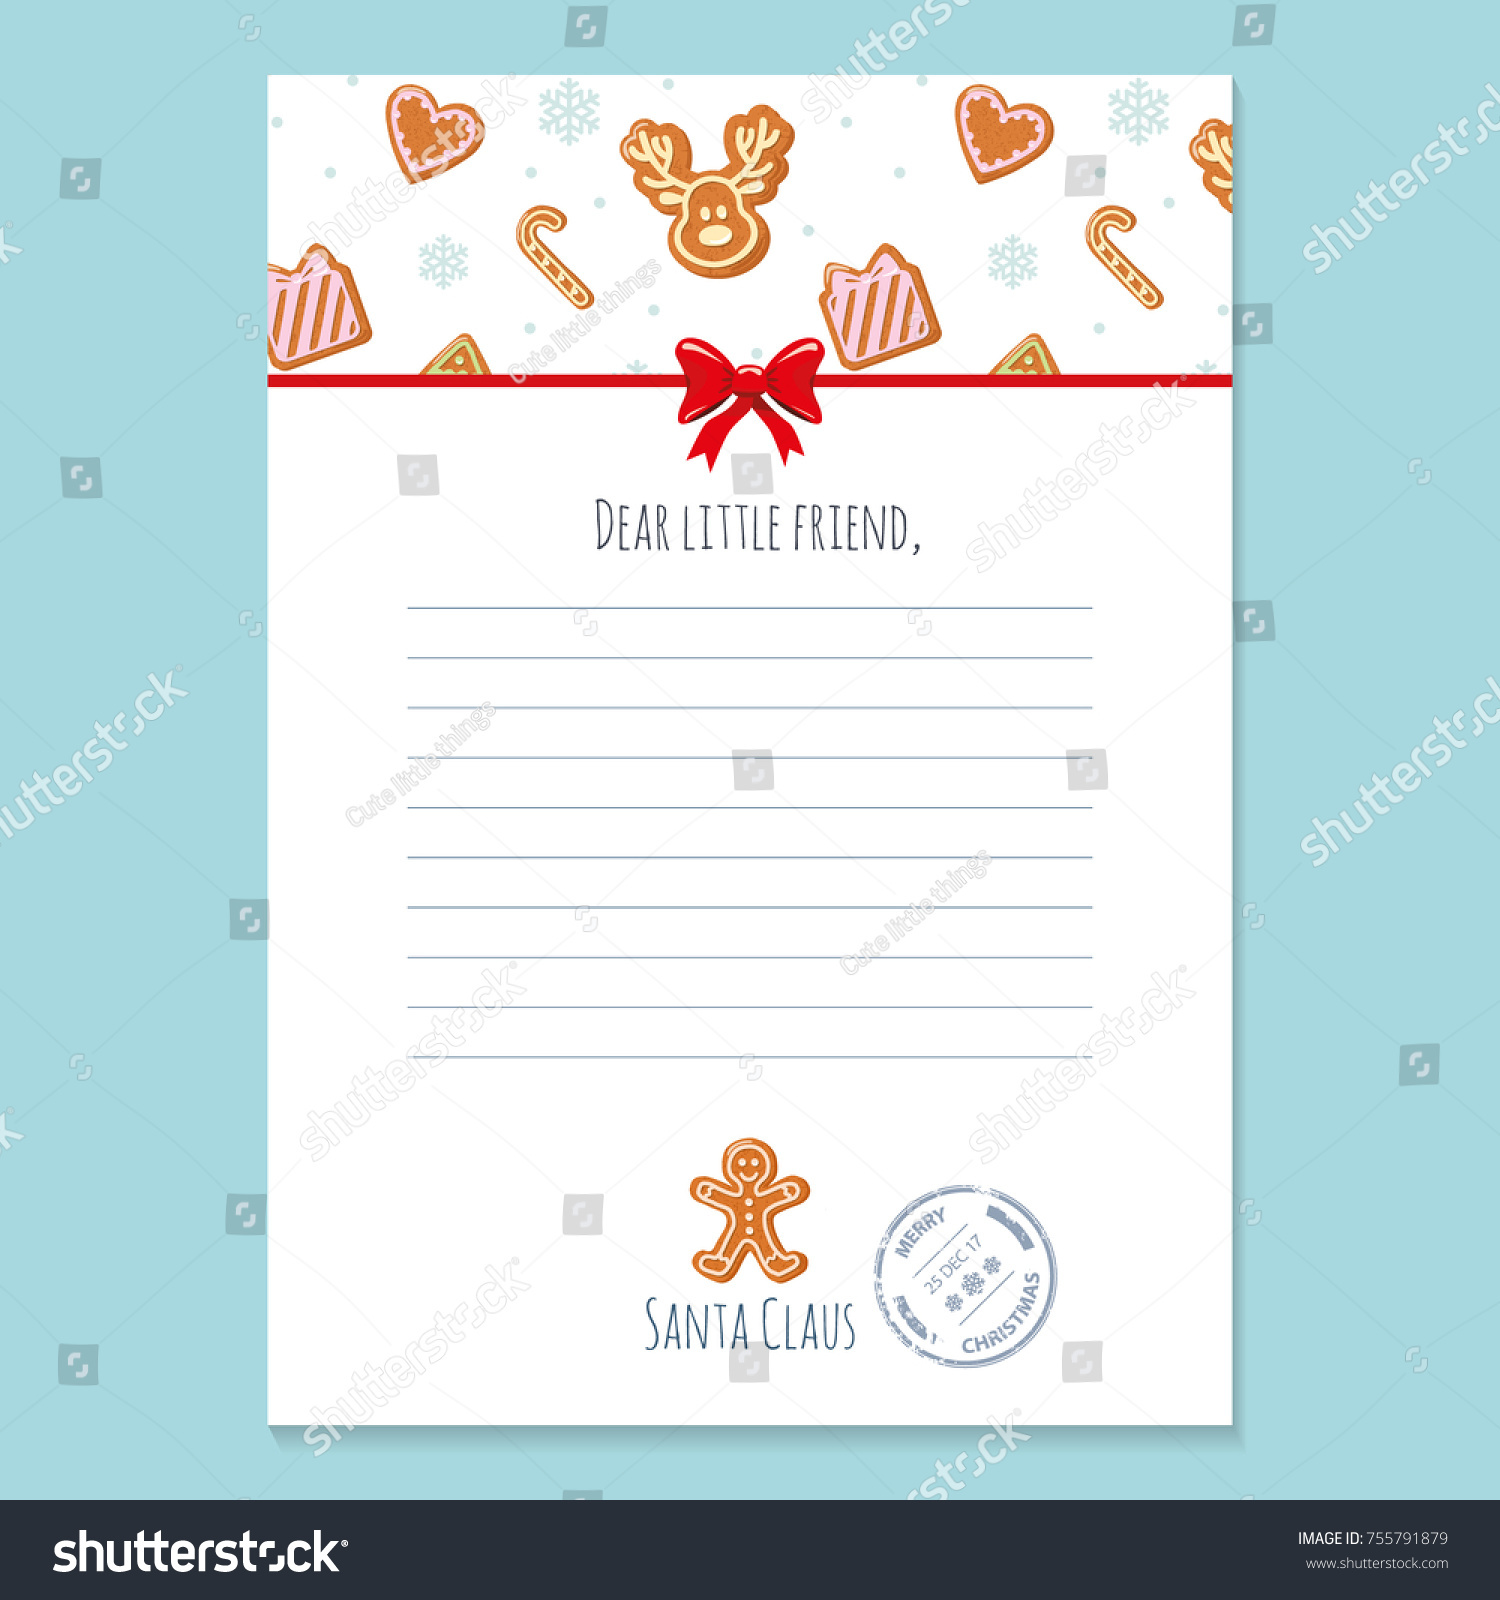 Christmas letter santa claus template layout stock vector 755791879 christmas letter from santa claus template layout in a4 size pattern with gingerbread cookies spiritdancerdesigns Image collections